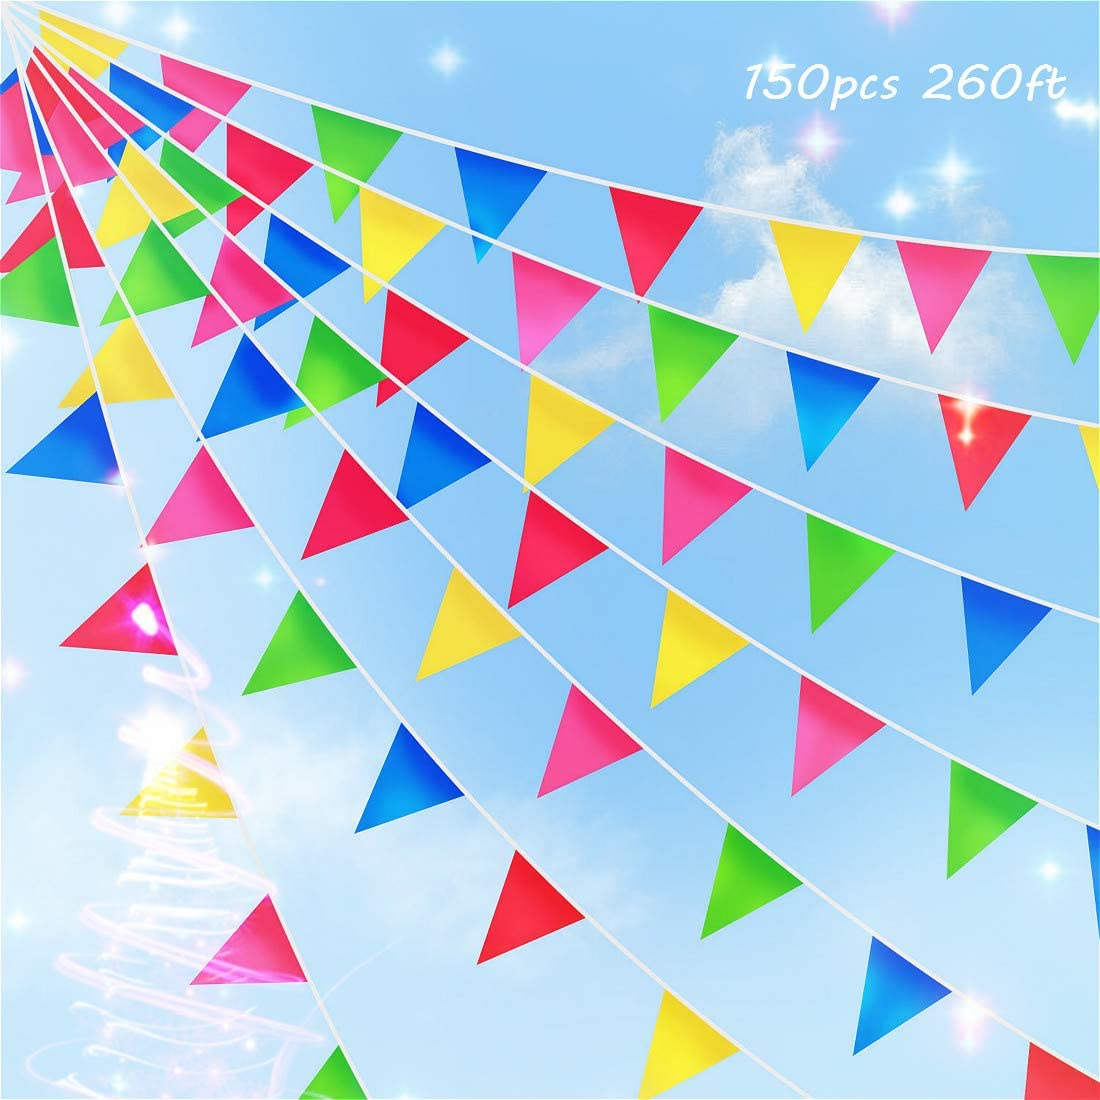 260ft 150pcs Multicolor Pennants Banner Rainbow Colorful Nylon Flags for Birthday Party Decorations Weather Resistant Grand Opening Celebrations Christmas Festivals